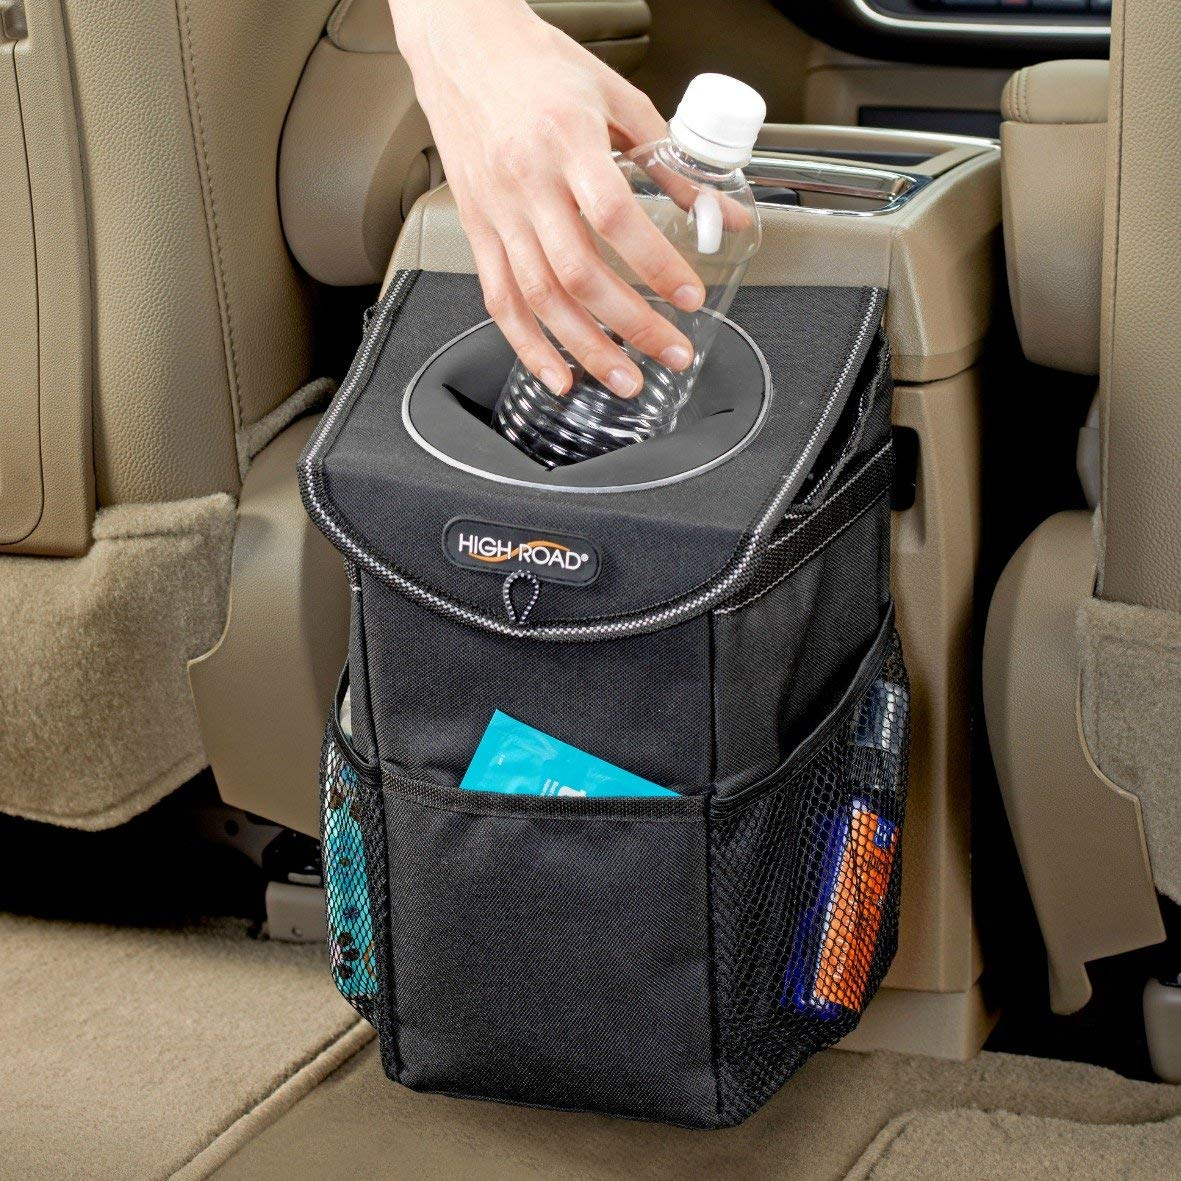 Auto Car Trash Can, Auto Litter Bag, Auto Garbage Bin, Car Trash Pail, Great for Cars, Boats /& RVs Leakproof and Removable Liner-Black